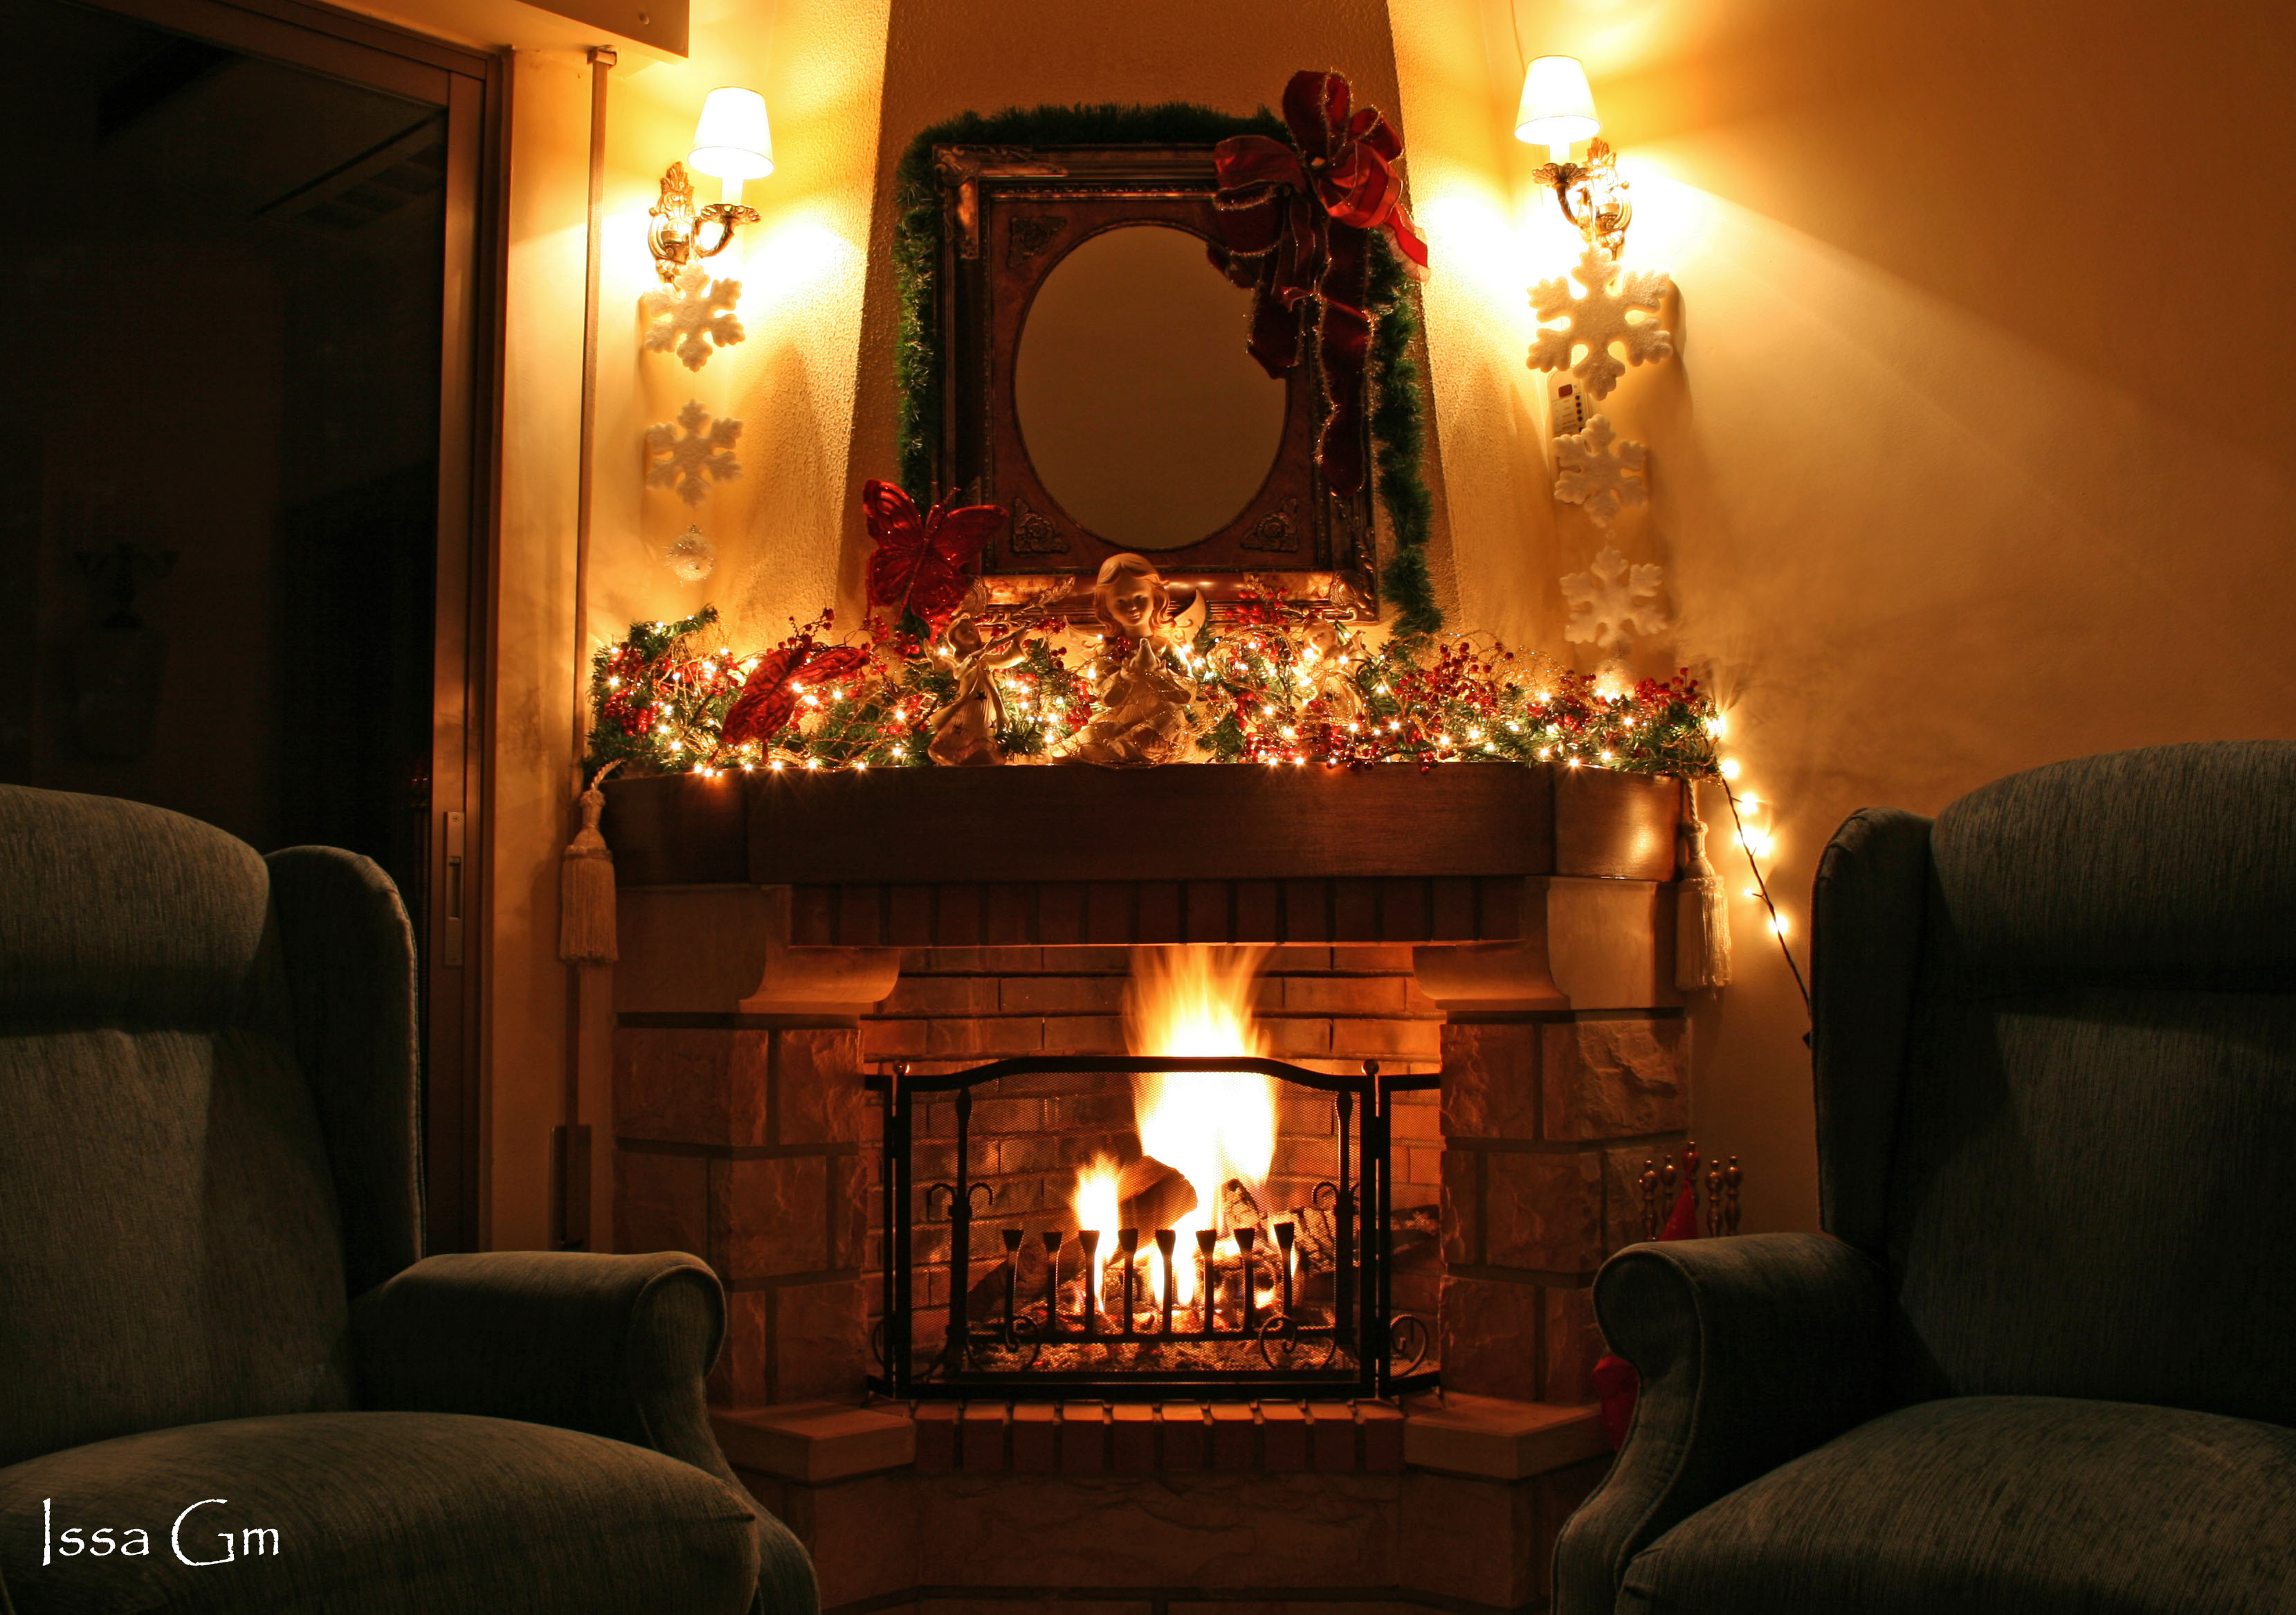 Christmas Fireplace Pictures Images & Pictures - Becuo